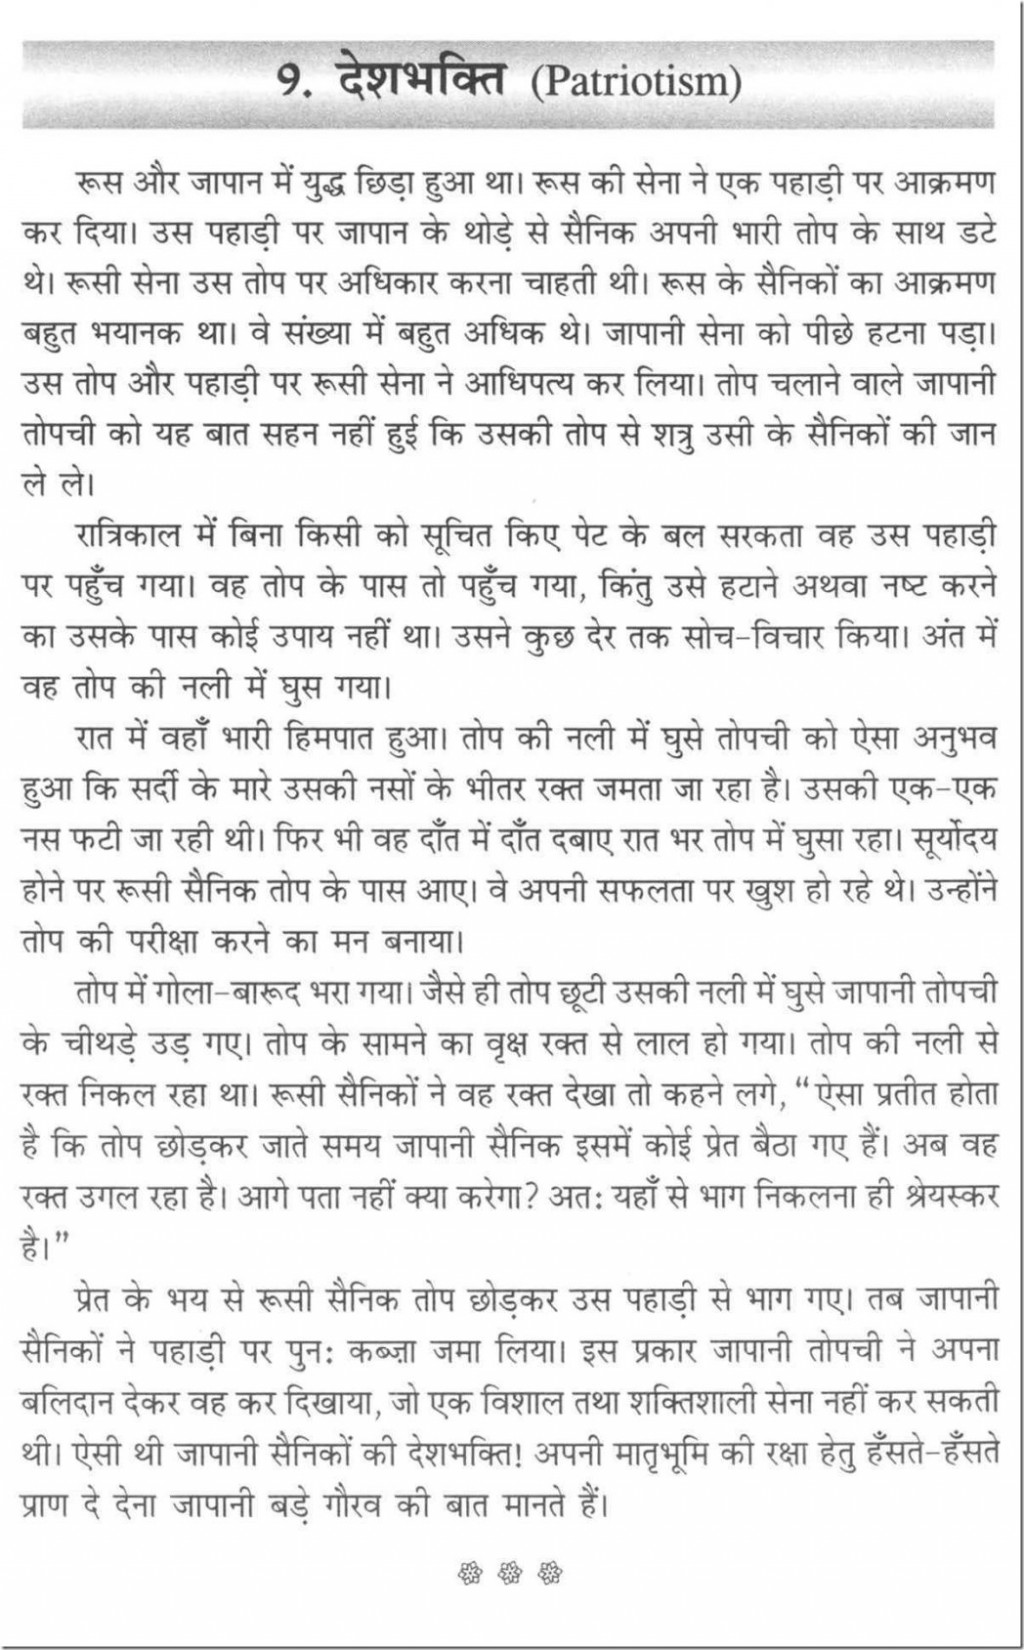 011 Where Can I Type My Essay Online Hindi Sites Write Is Legit Aa98 Research Paper Free For Cheap Uk Essayhero Me Hub 1048x1689 Example Stirring An Large